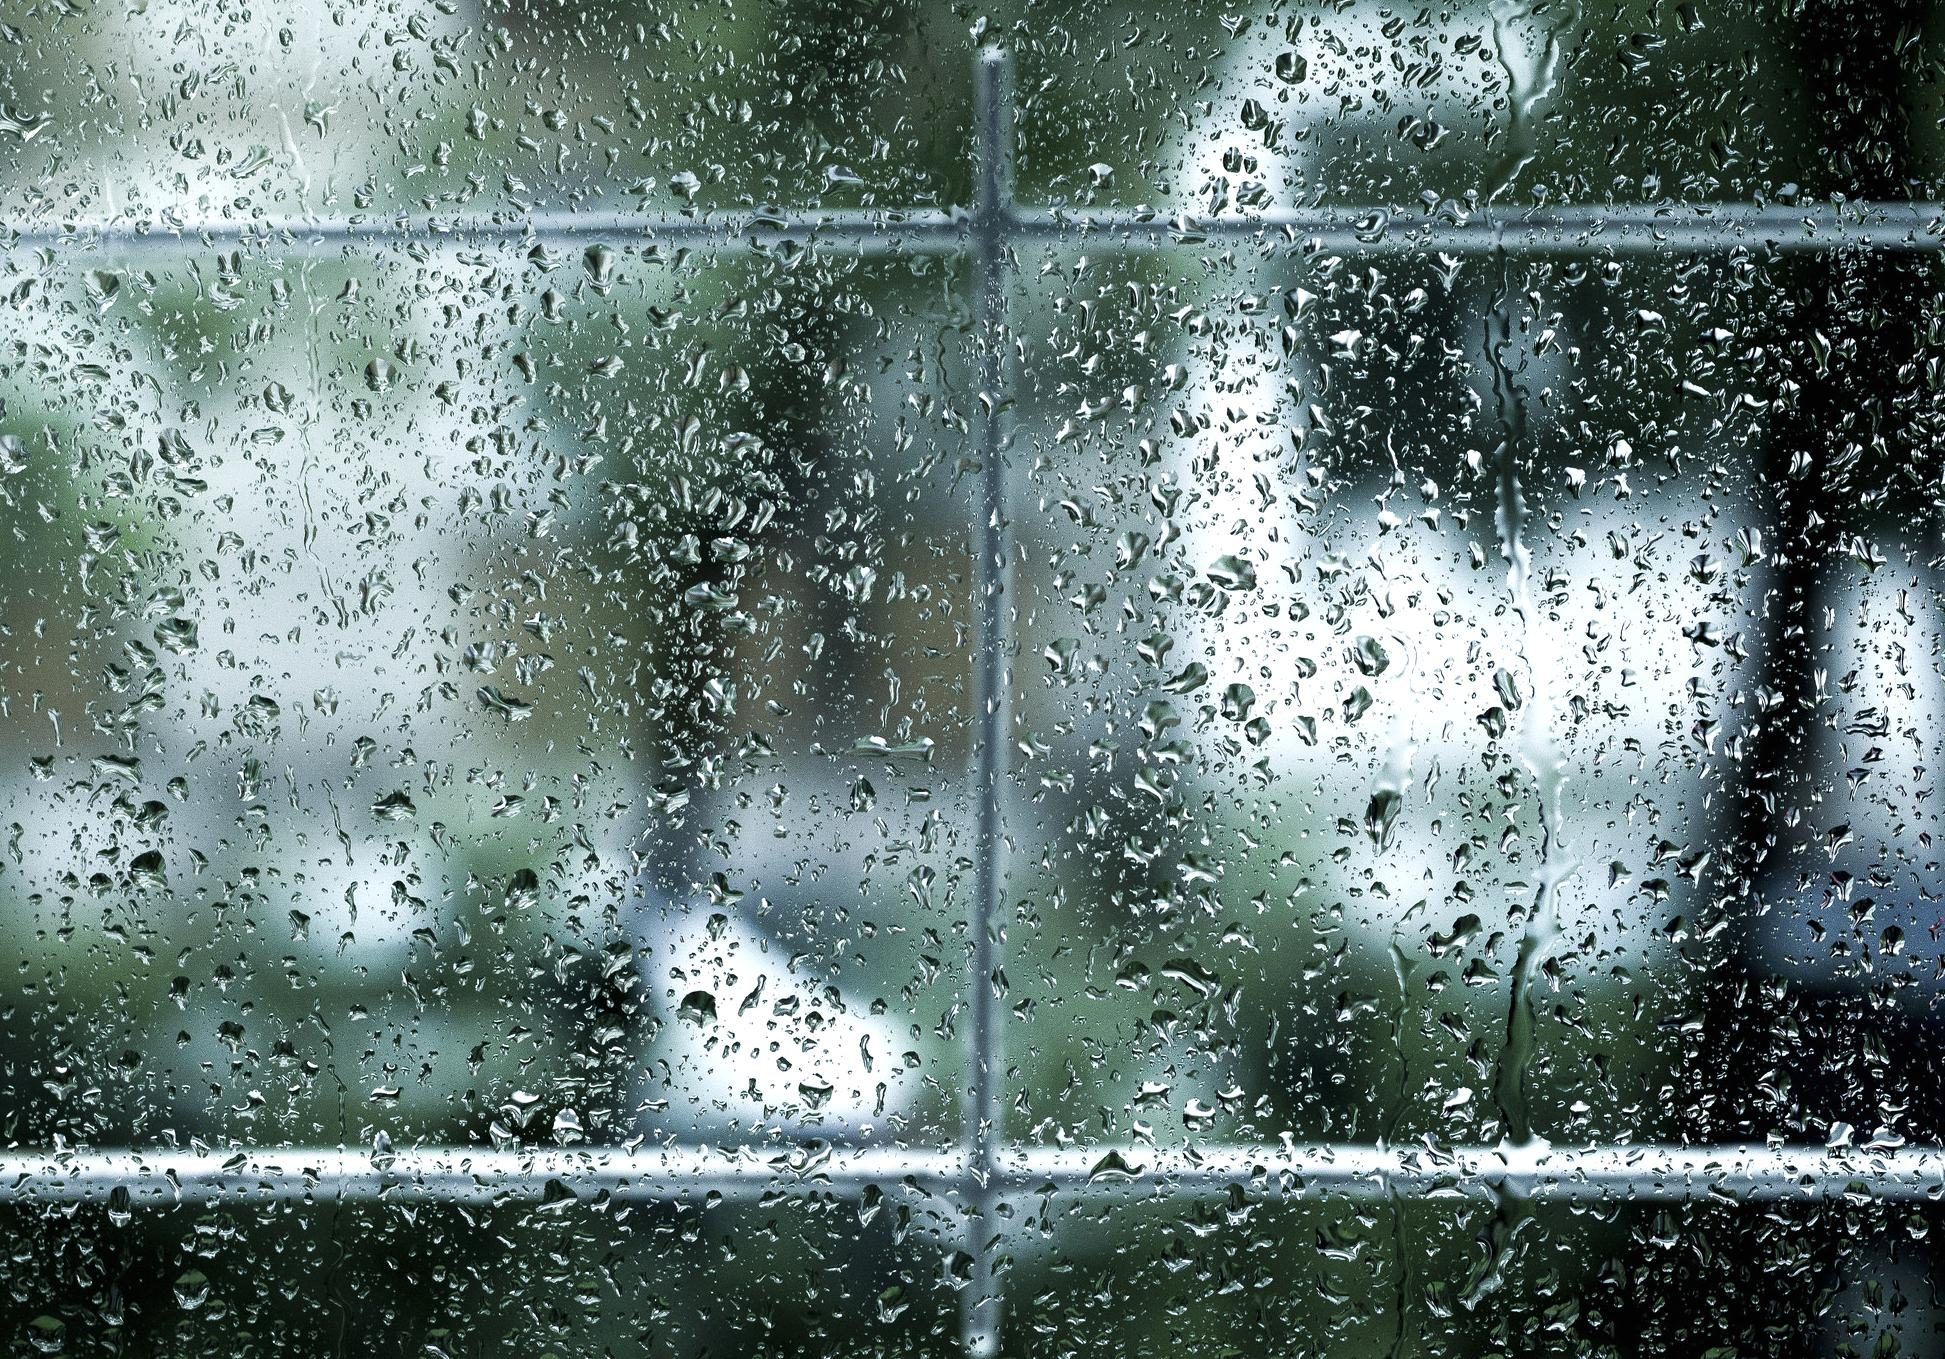 3d Liquid Abstract Wallpaper Free Picture Rain Wet Window Texture Wall Urban